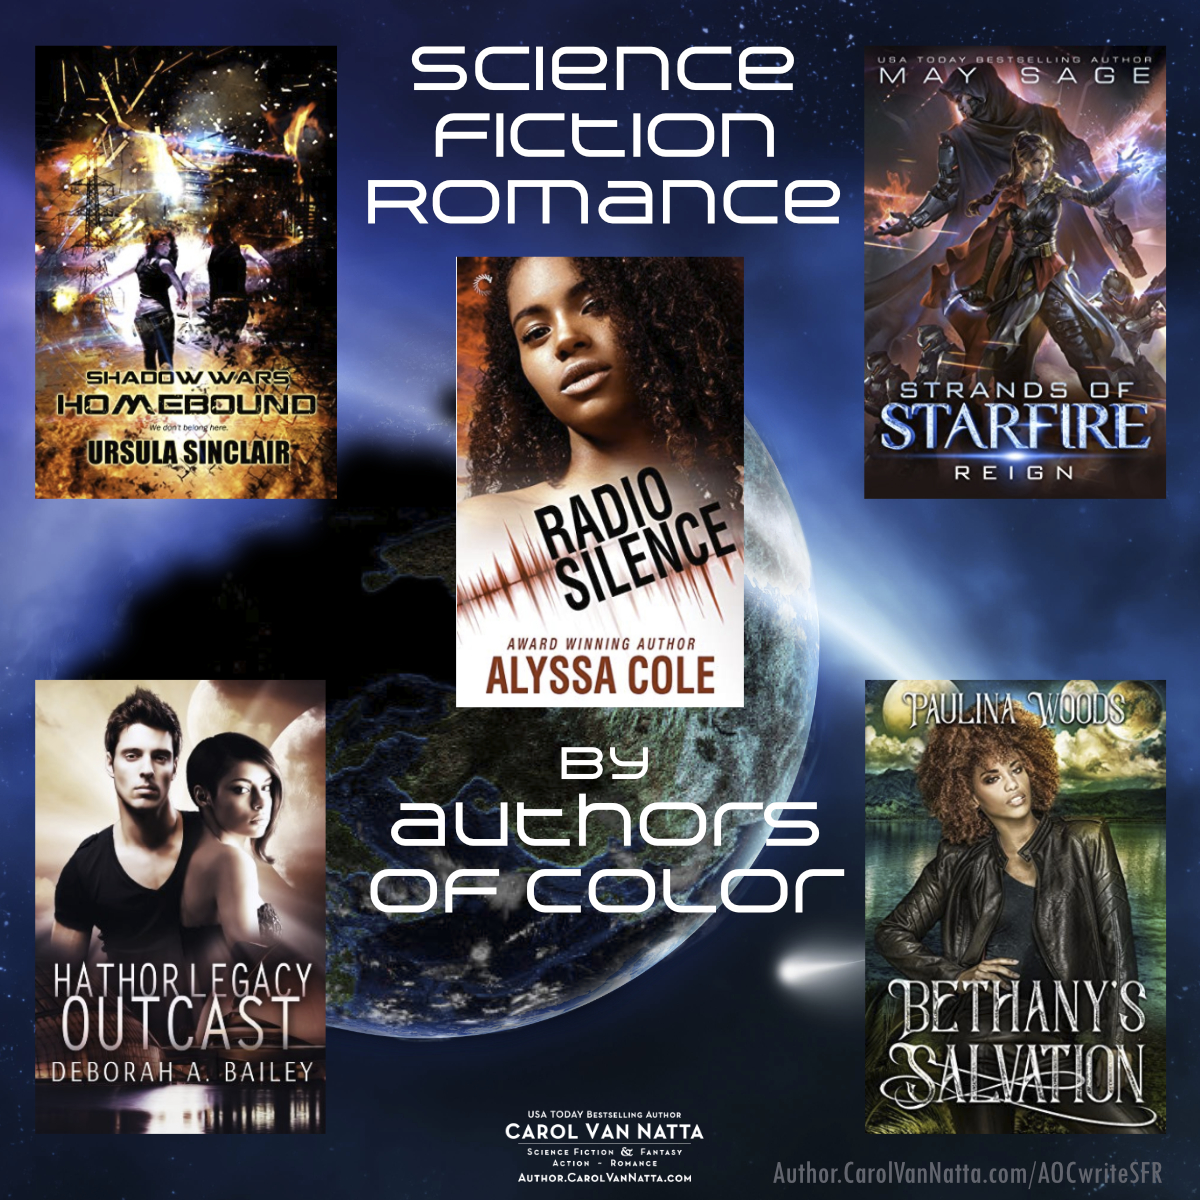 scifi romances by authors of color